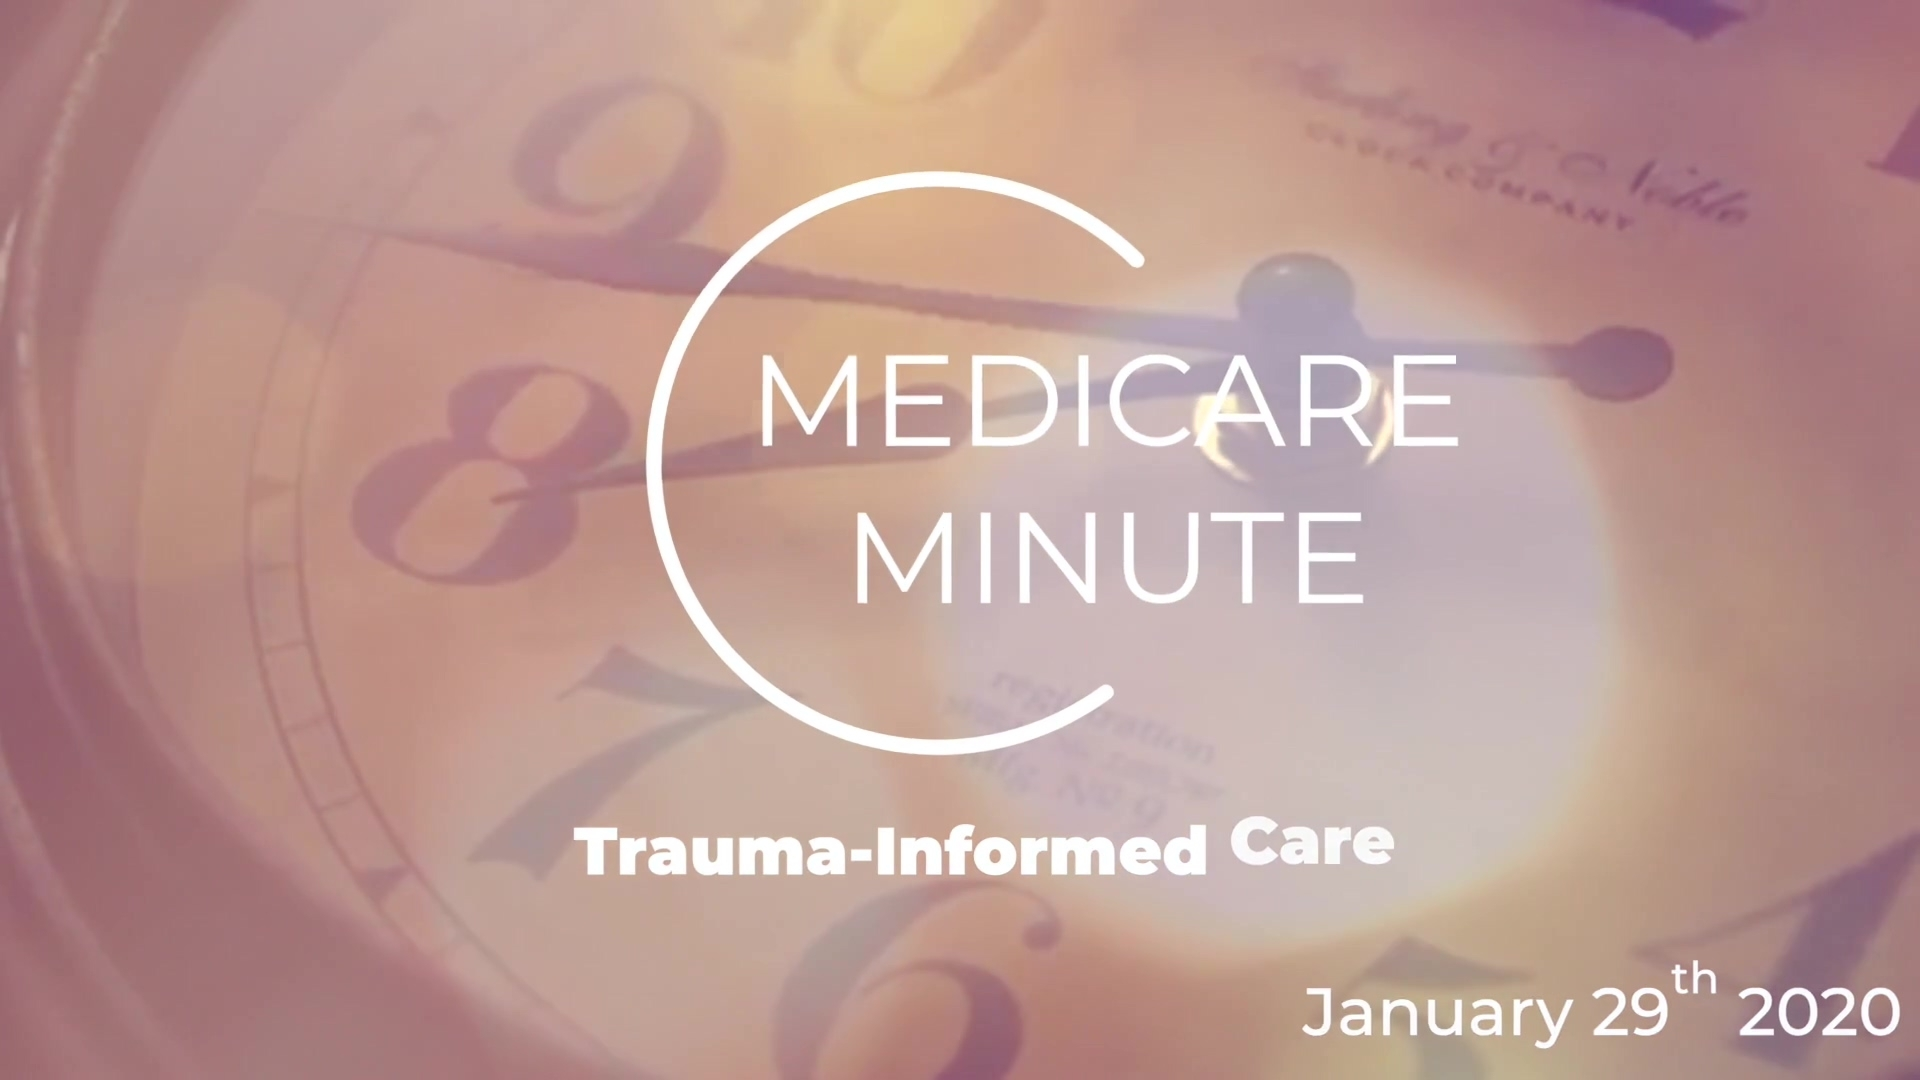 Medicare Minute: Top 4 Tags For Trauma-Informed Care